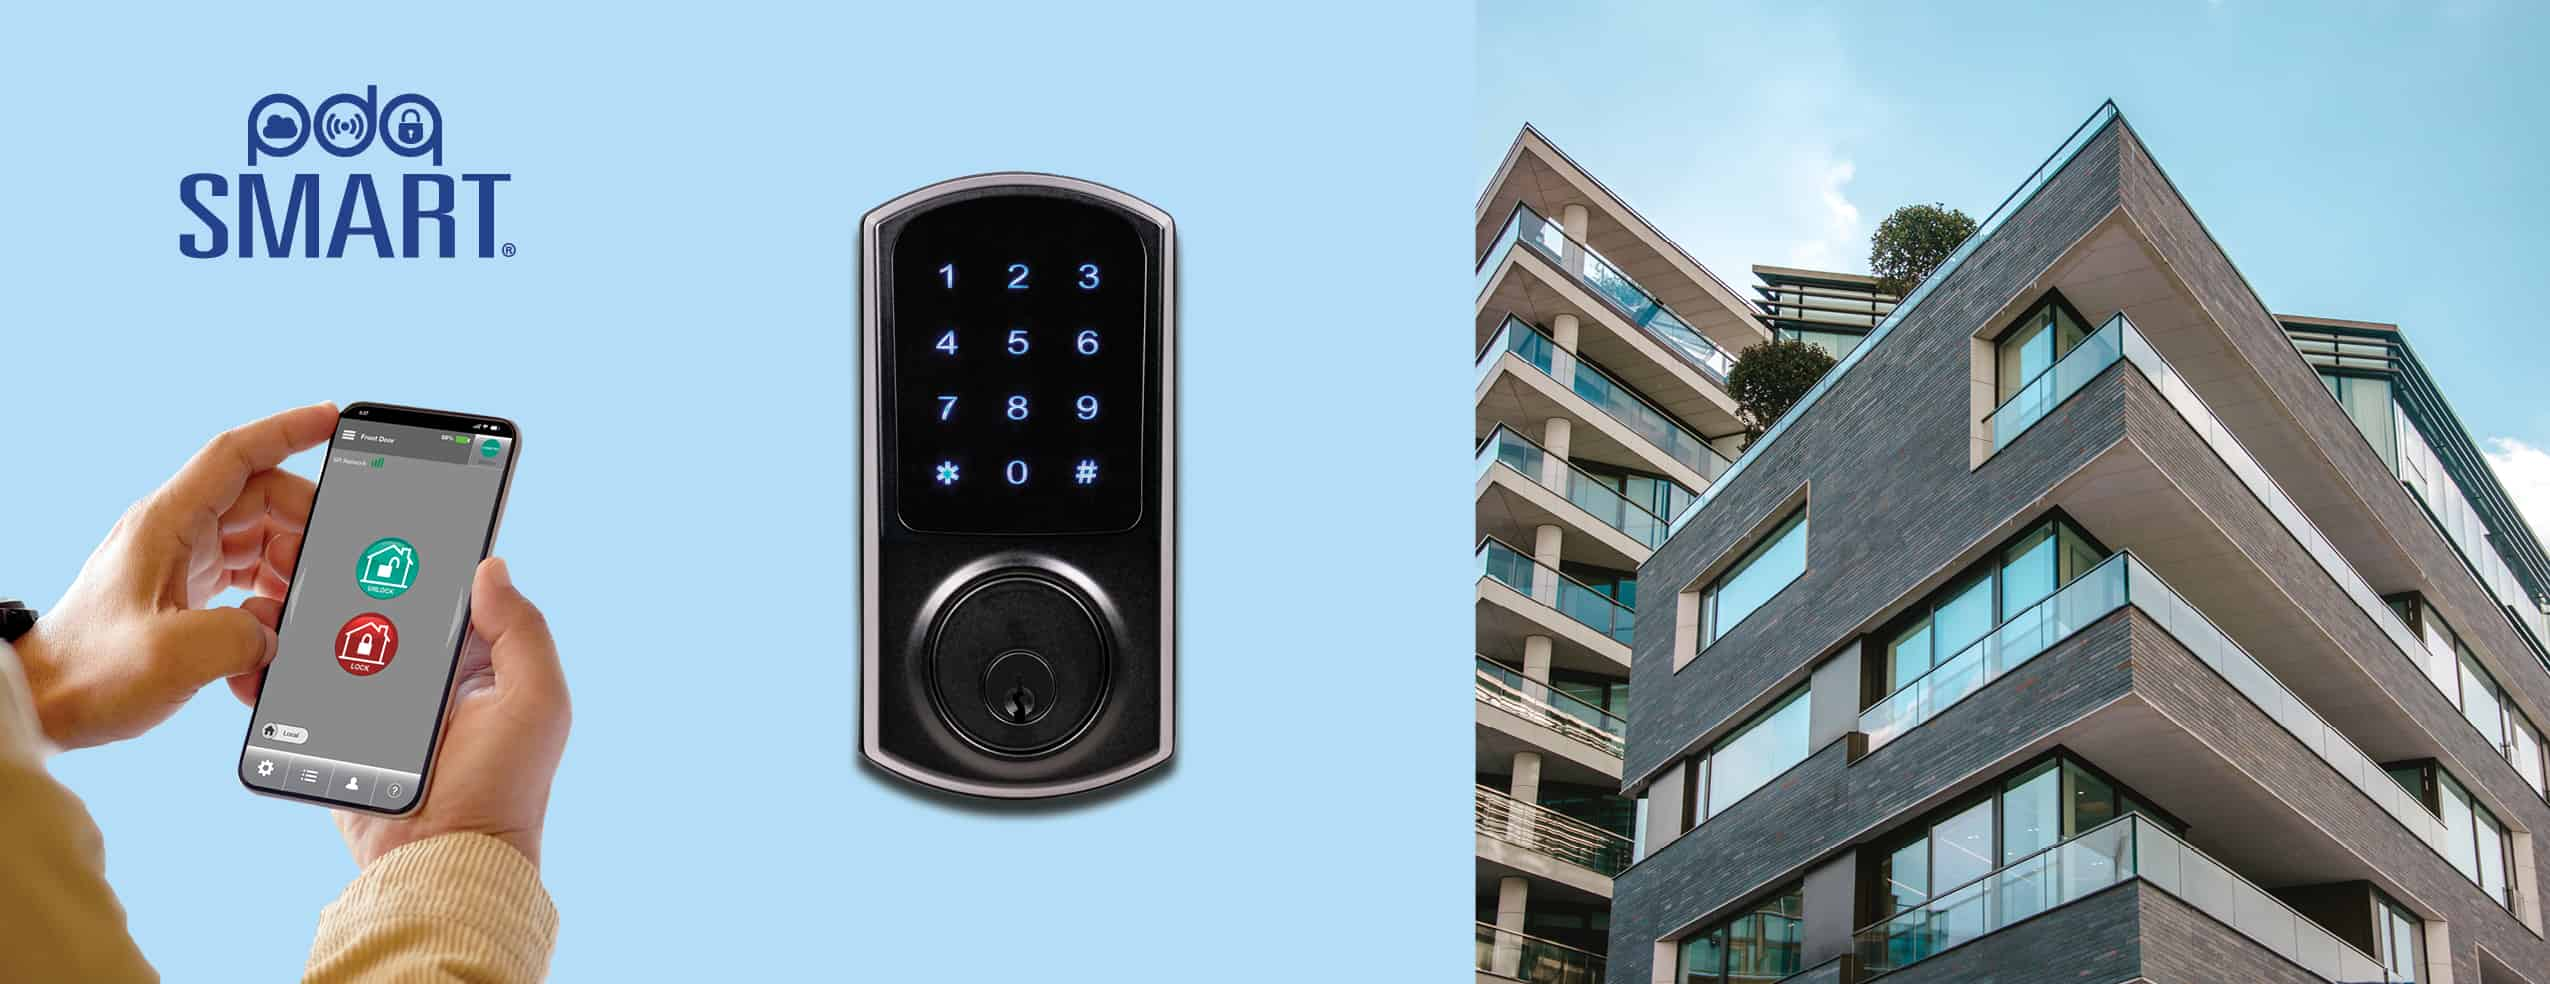 AAOA's Rental Housing Conference & Expo Exhibitor Feature – Meet pdqSMART Keyless Mobile-Enabled Locks